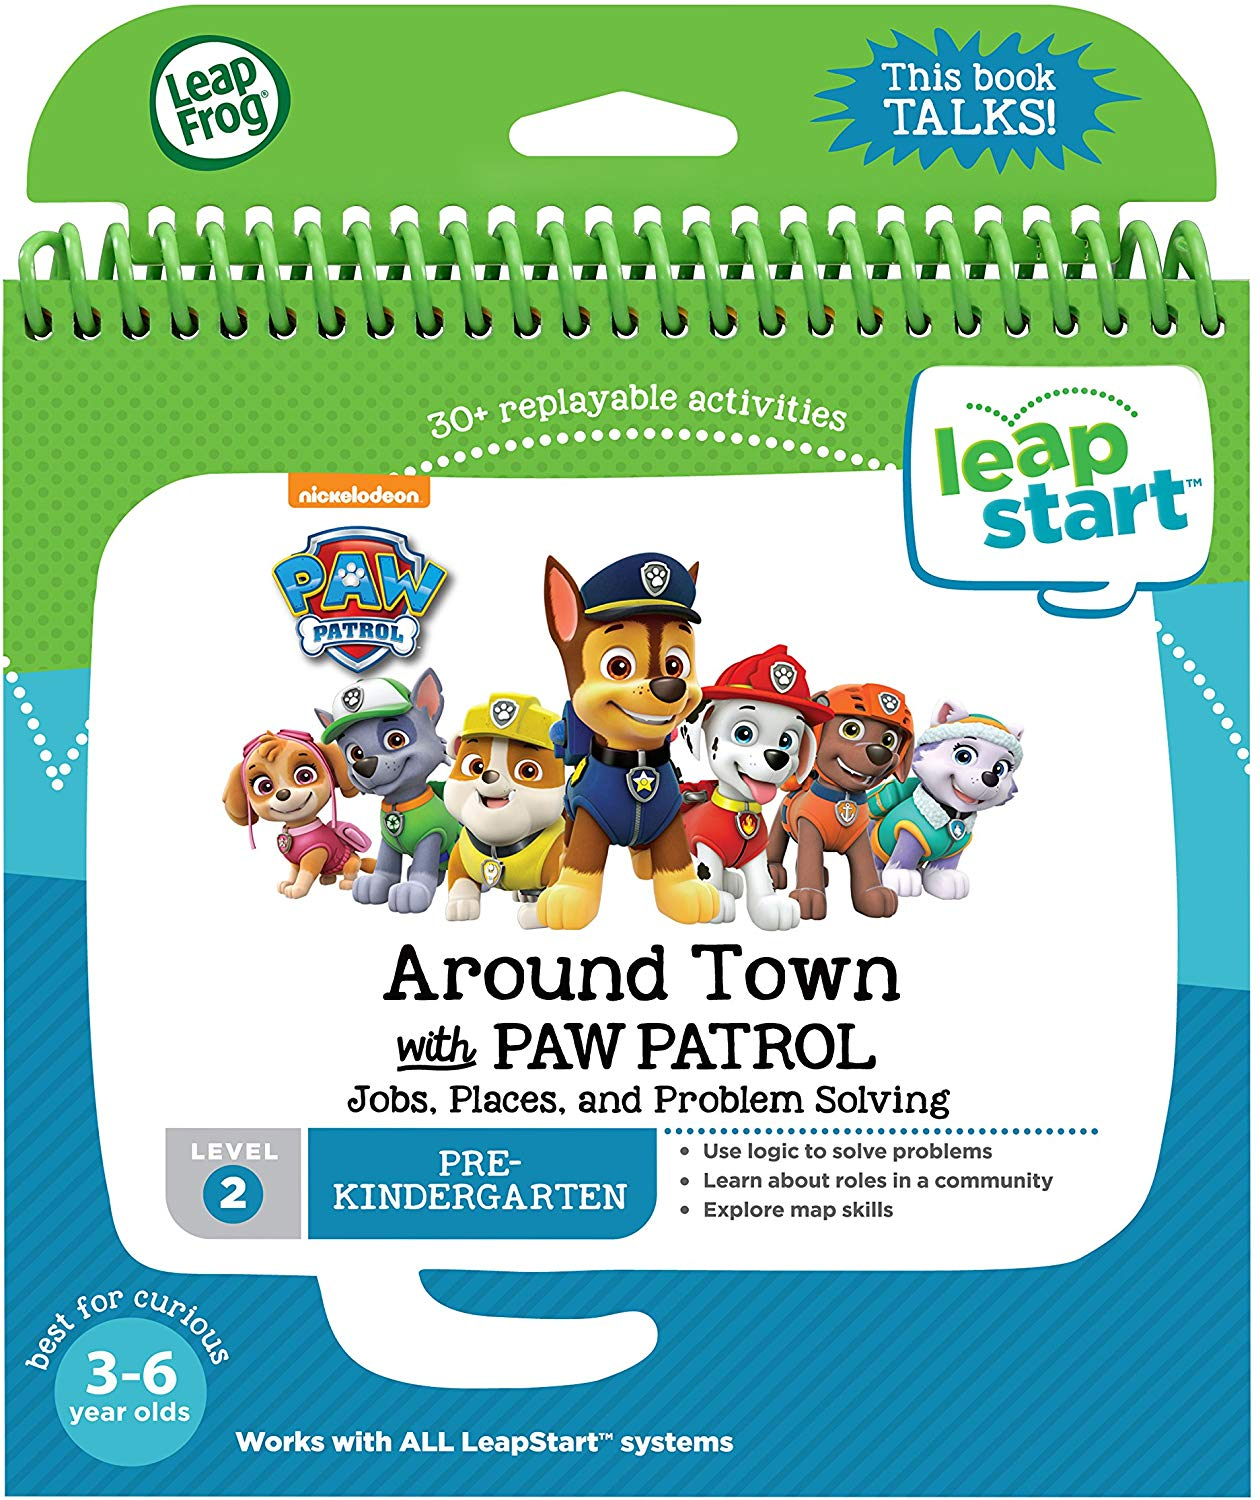 Leapfrog Preschool: Around Town with Paw Patrol Activity Book (3D Enhanced)